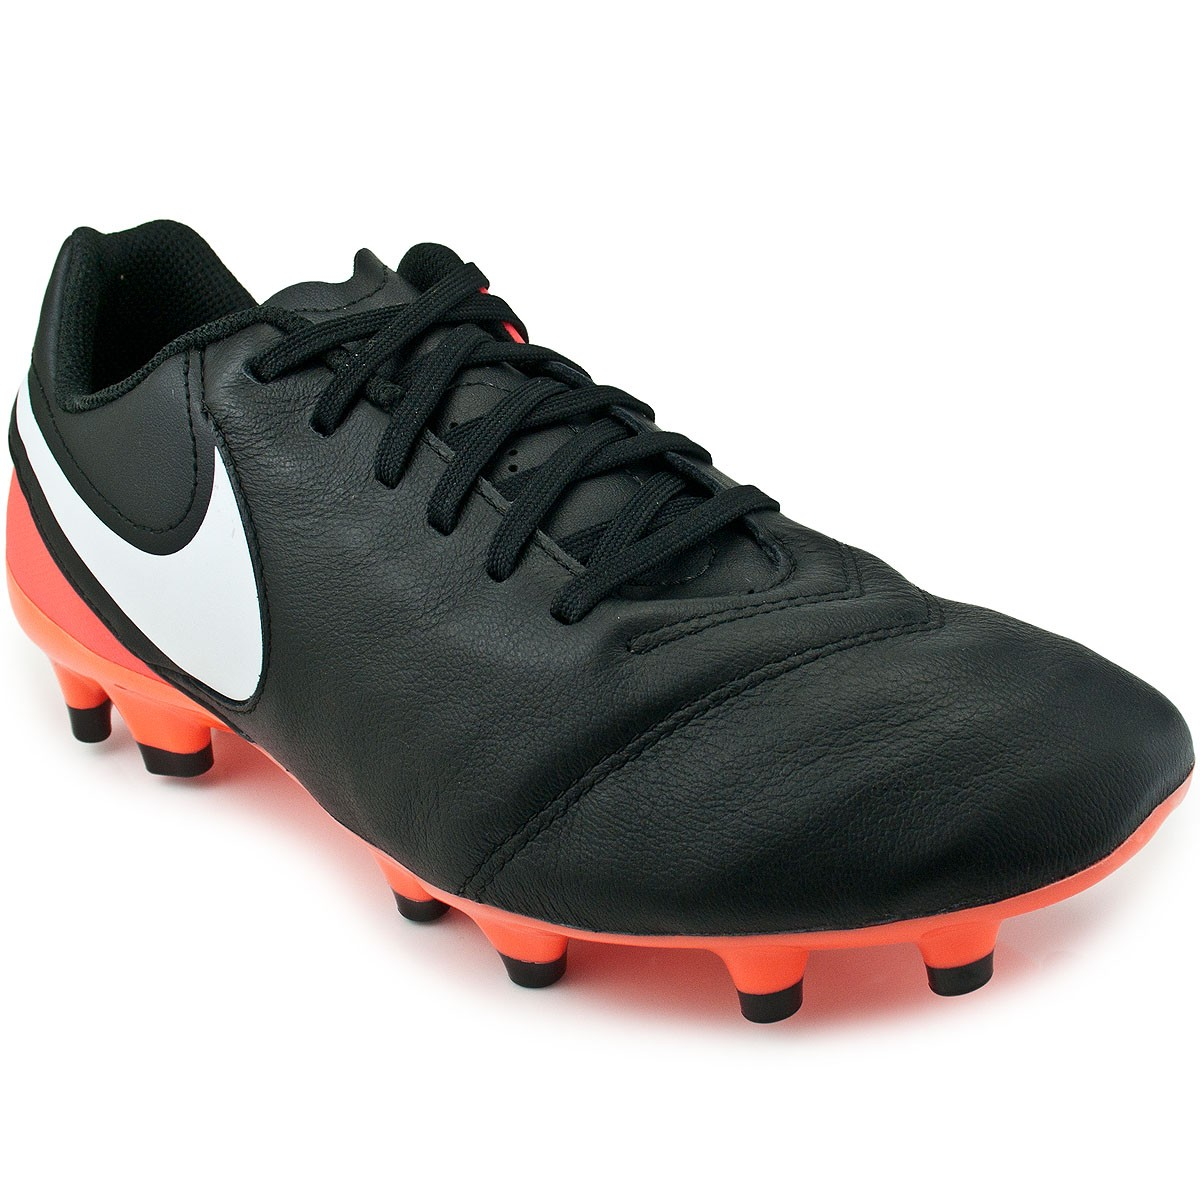 Chuteira Nike Tiempo Genio II Leather FG  be33a791df0ce